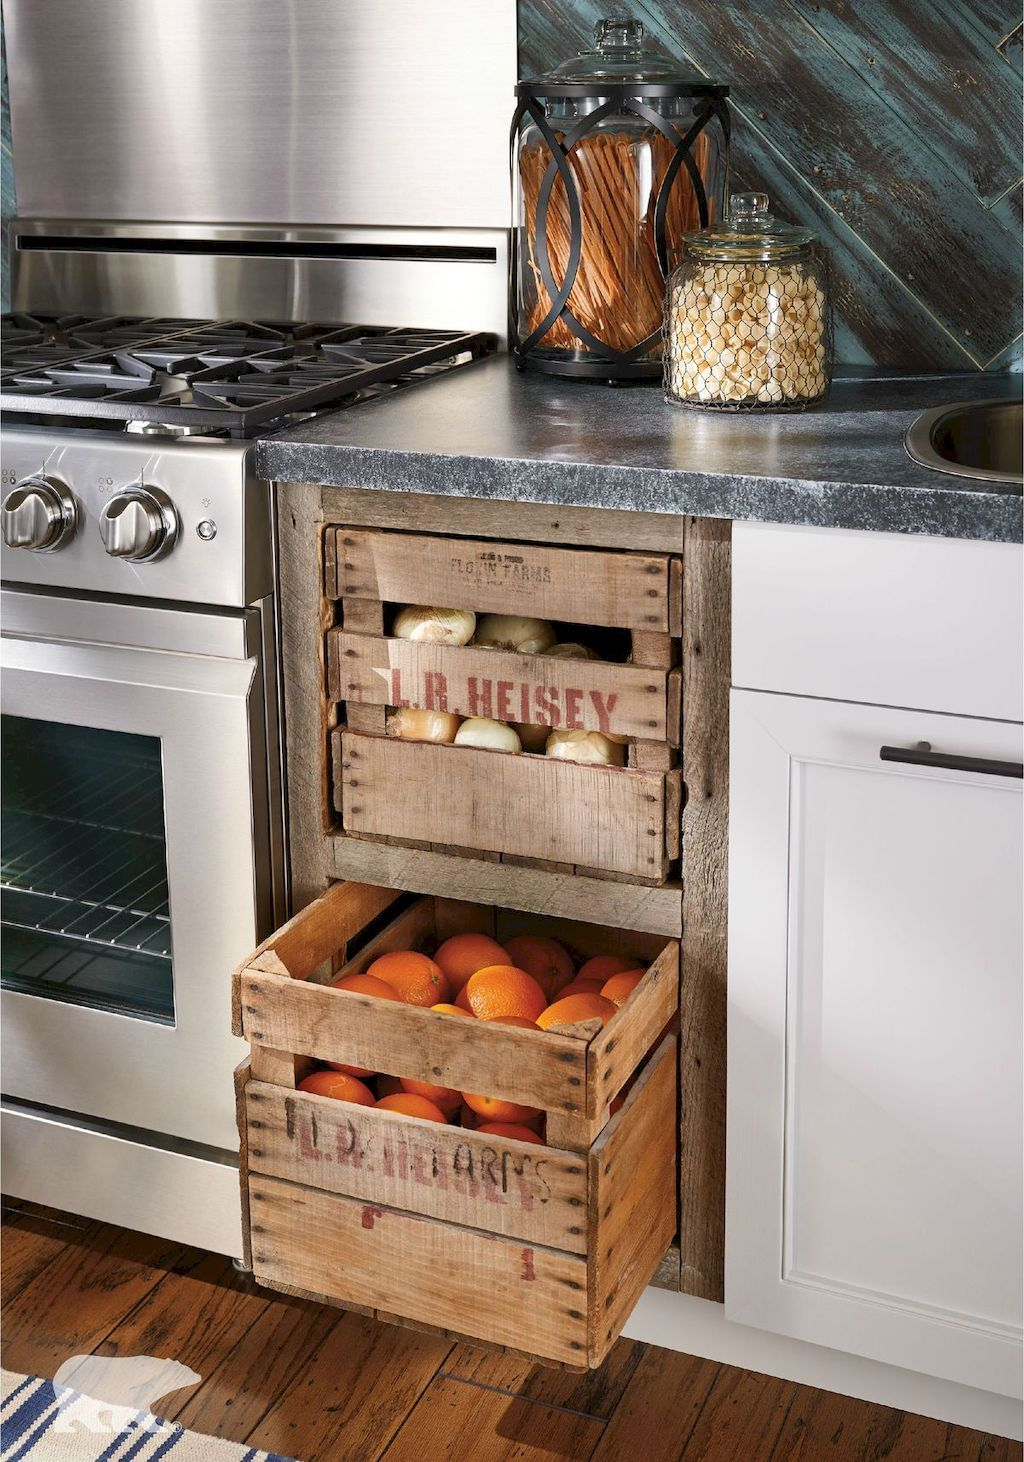 40 Brilliant DIY Kitchen Organization Ideas #kitchenorganizationdiy